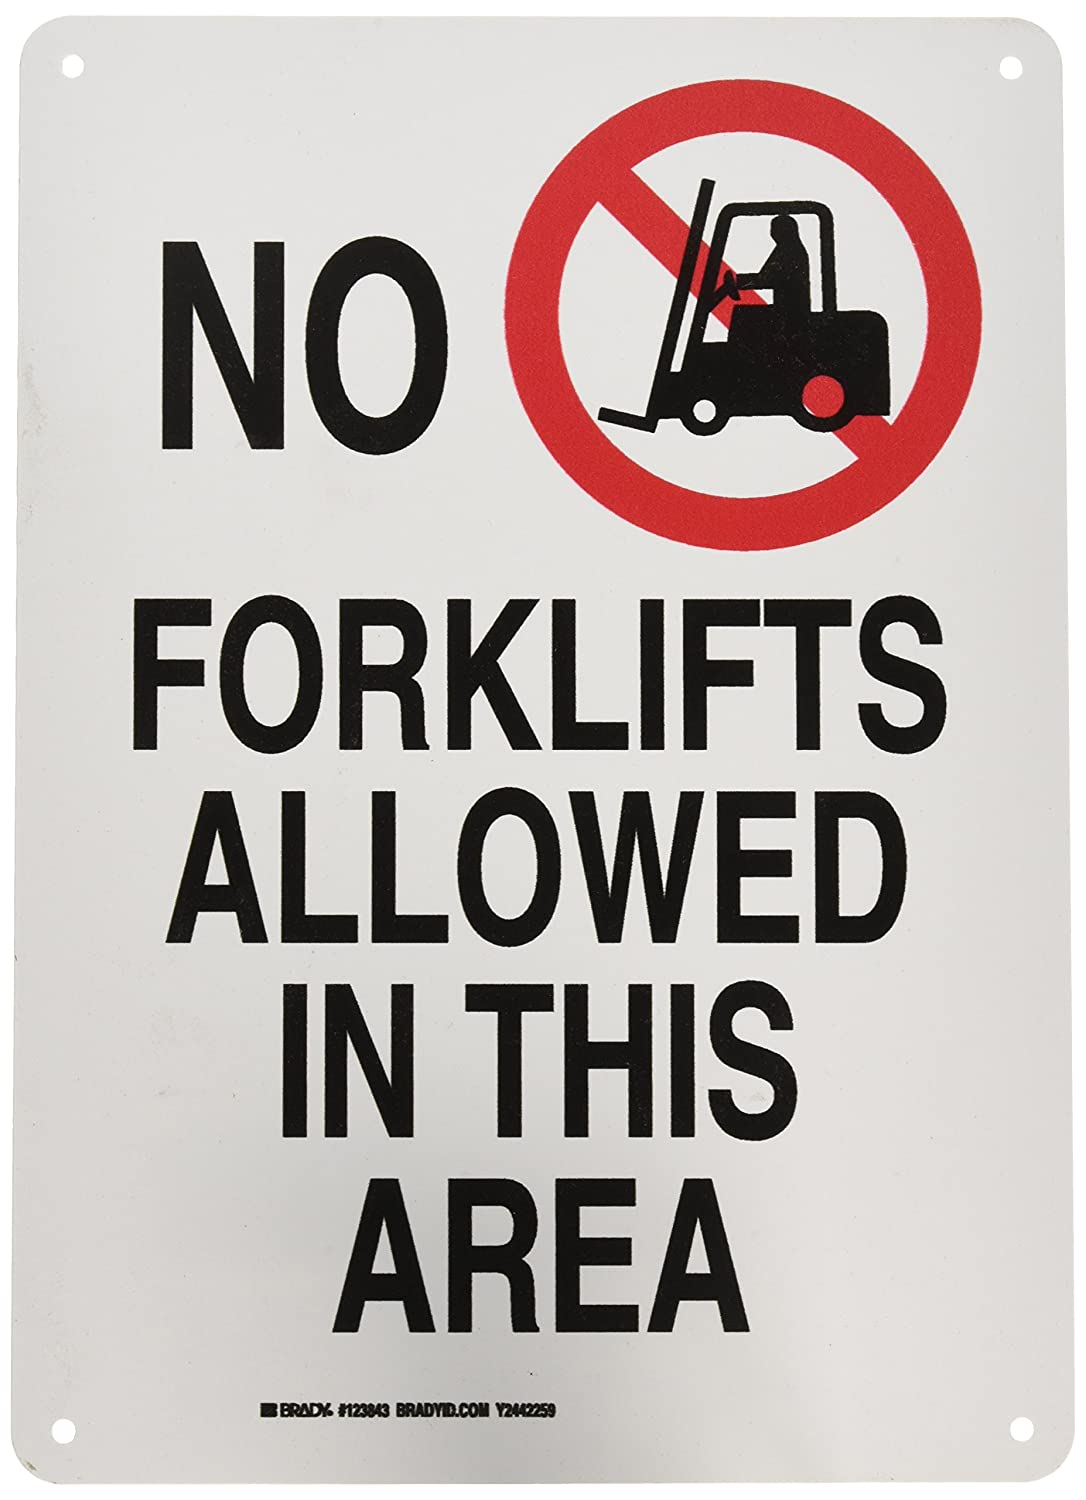 Brady 123843 Machine and Operational Sign Black and Red on White 10 Width LegendNo Forklifts Allowed in This Area 14 Height